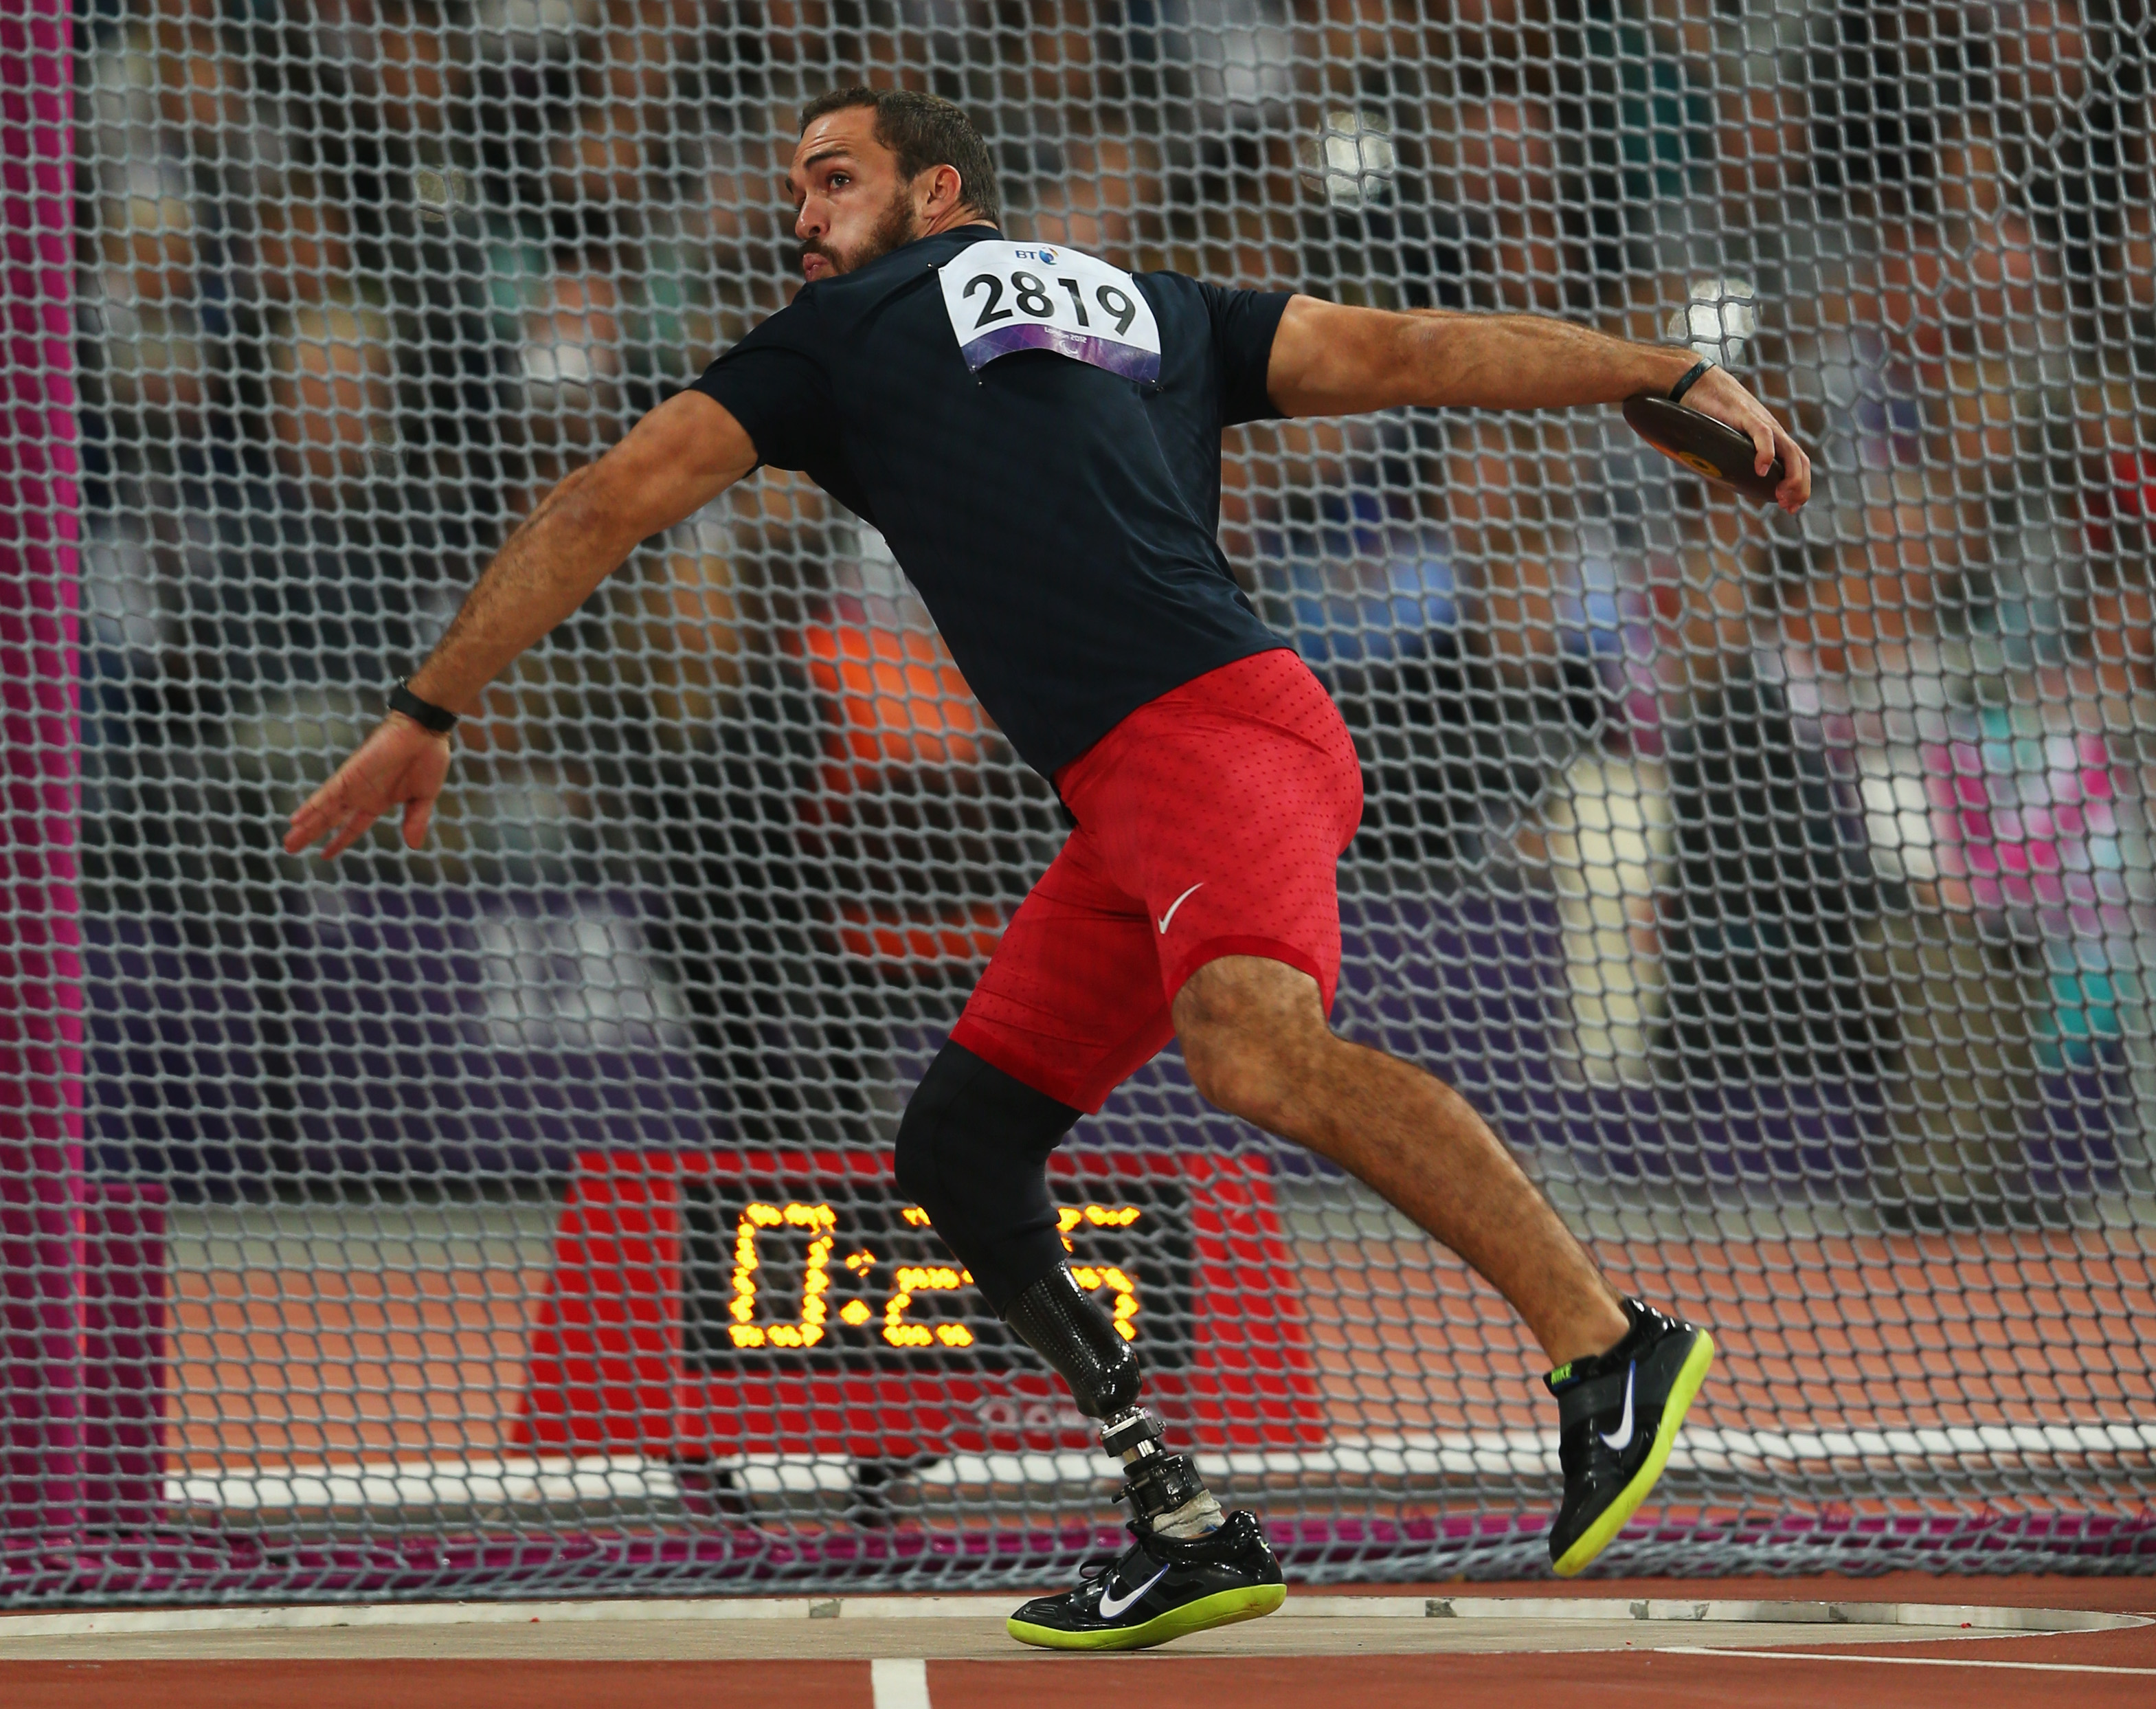 Jeremy Campbell of the United States competes in the Men's Discus Throw - F44 Final on day 8 of the London 2012 Paralympic Games at Olympic Stadium on September 6, 2012 in London, England.